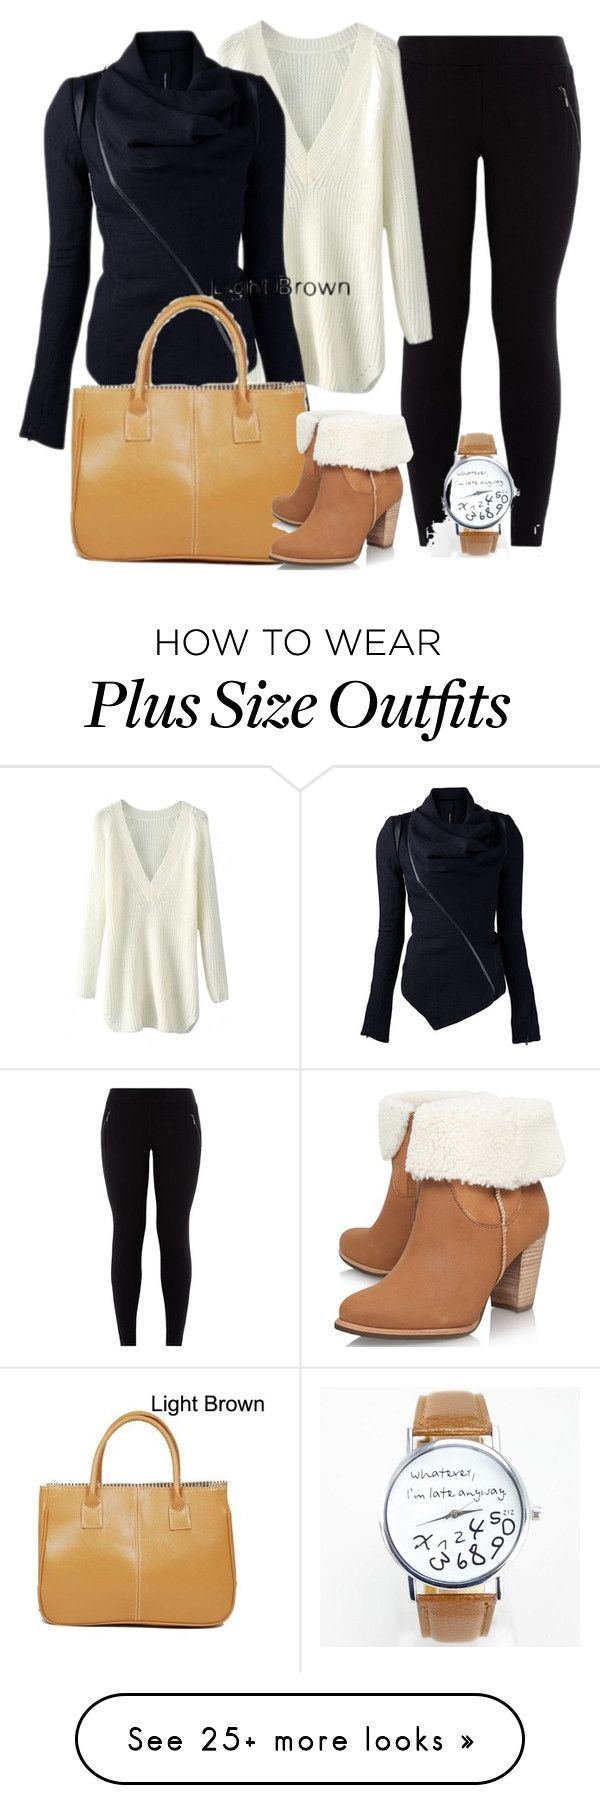 """""""Fall Party Outfit 2015"""" by myfriendshop on Polyvore featuring UGG Australia"""